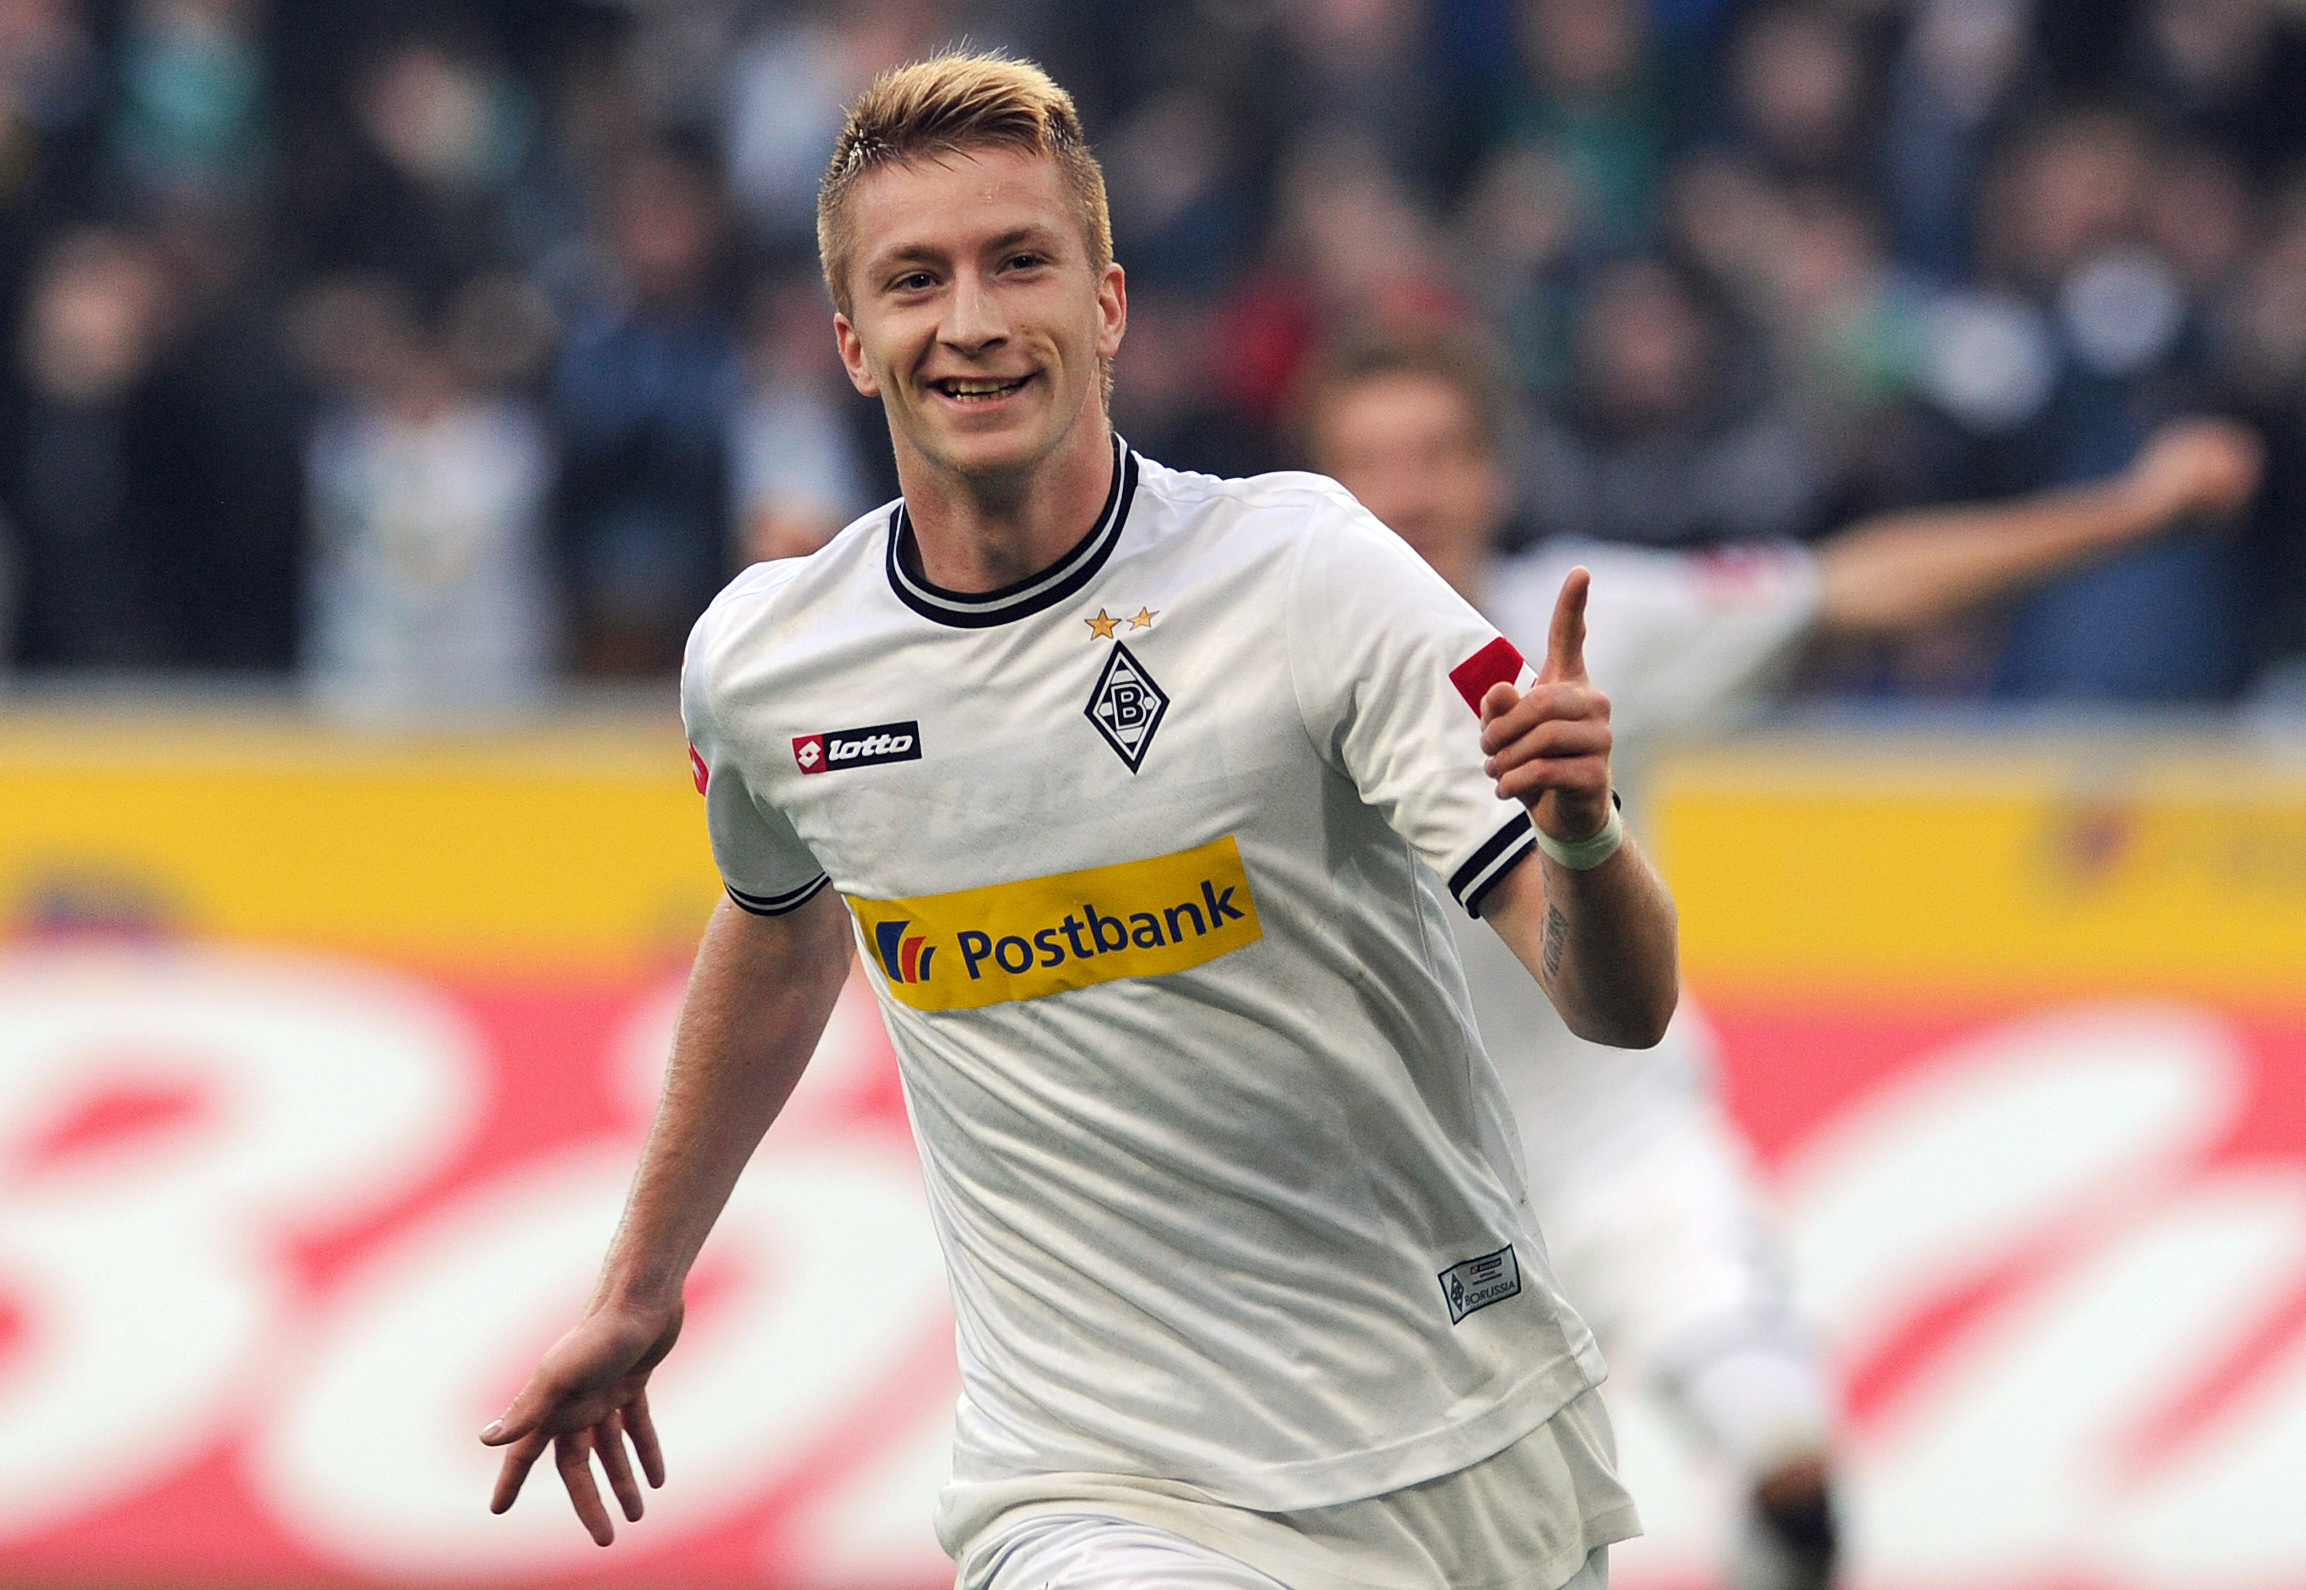 marco reus wallpapers images photos pictures backgrounds